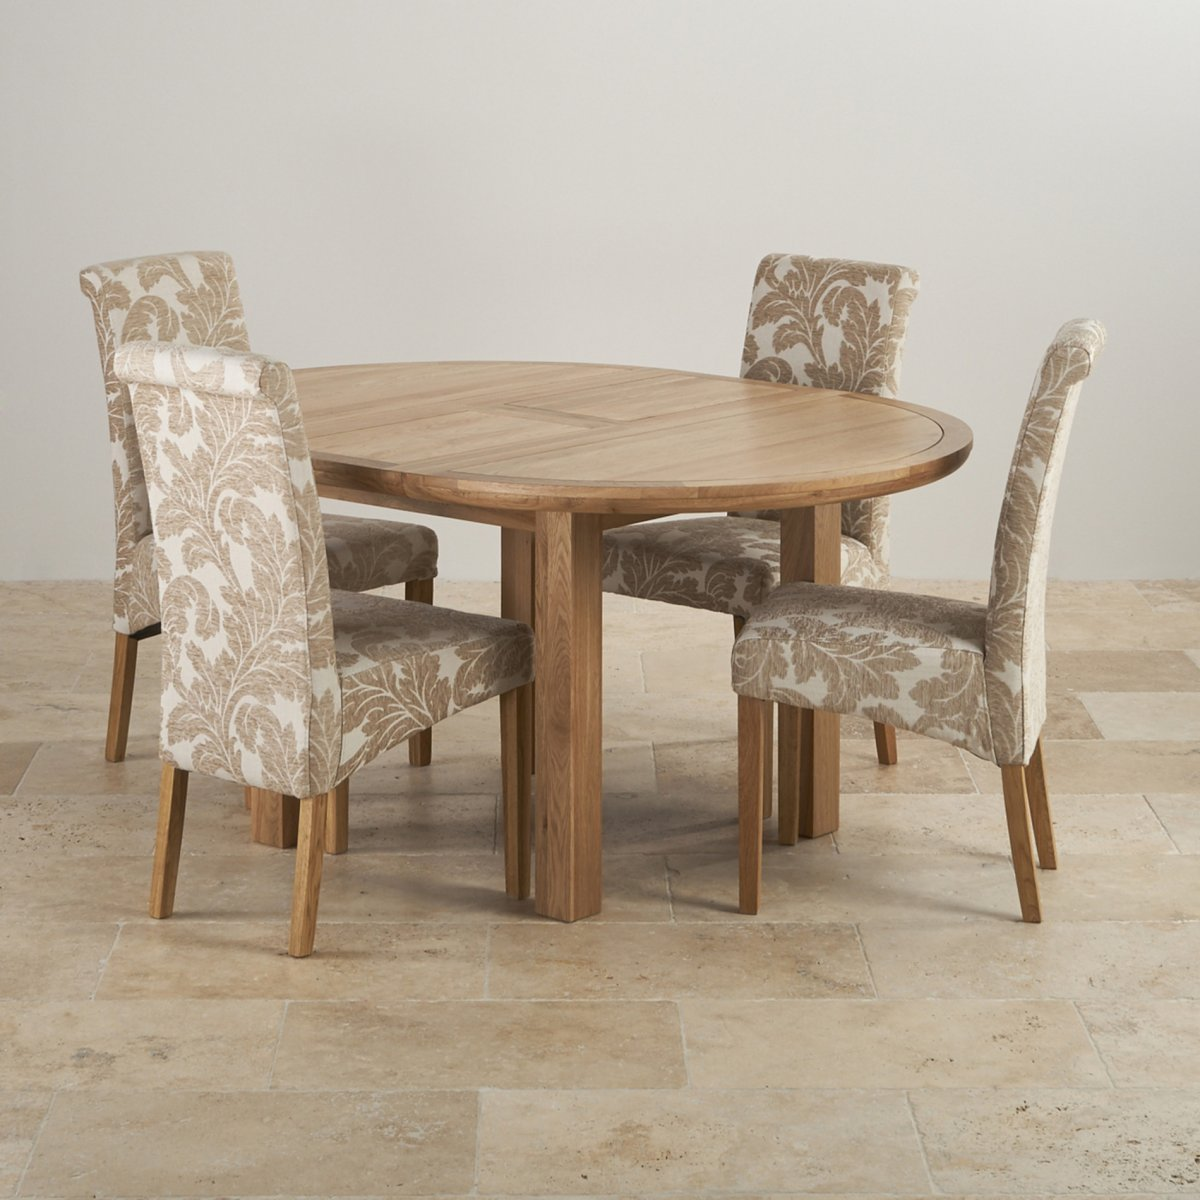 Knightsbridge oak dining set round extending table 4 for Round dining table set